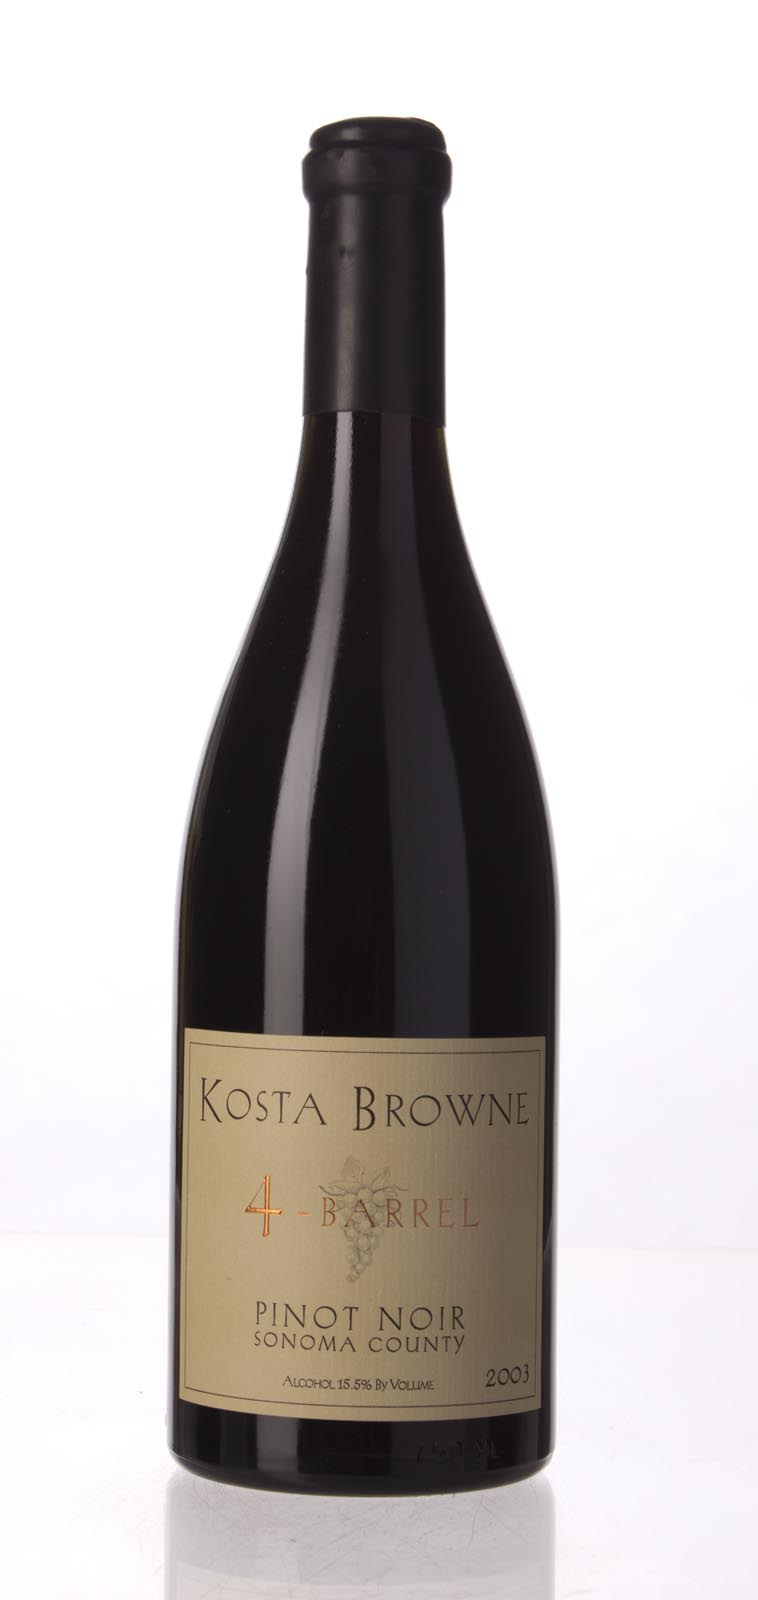 Kosta Browne Pinot Noir 4 Barrel 2003, 750mL (WS90) from The BPW - Merchants of rare and fine wines.